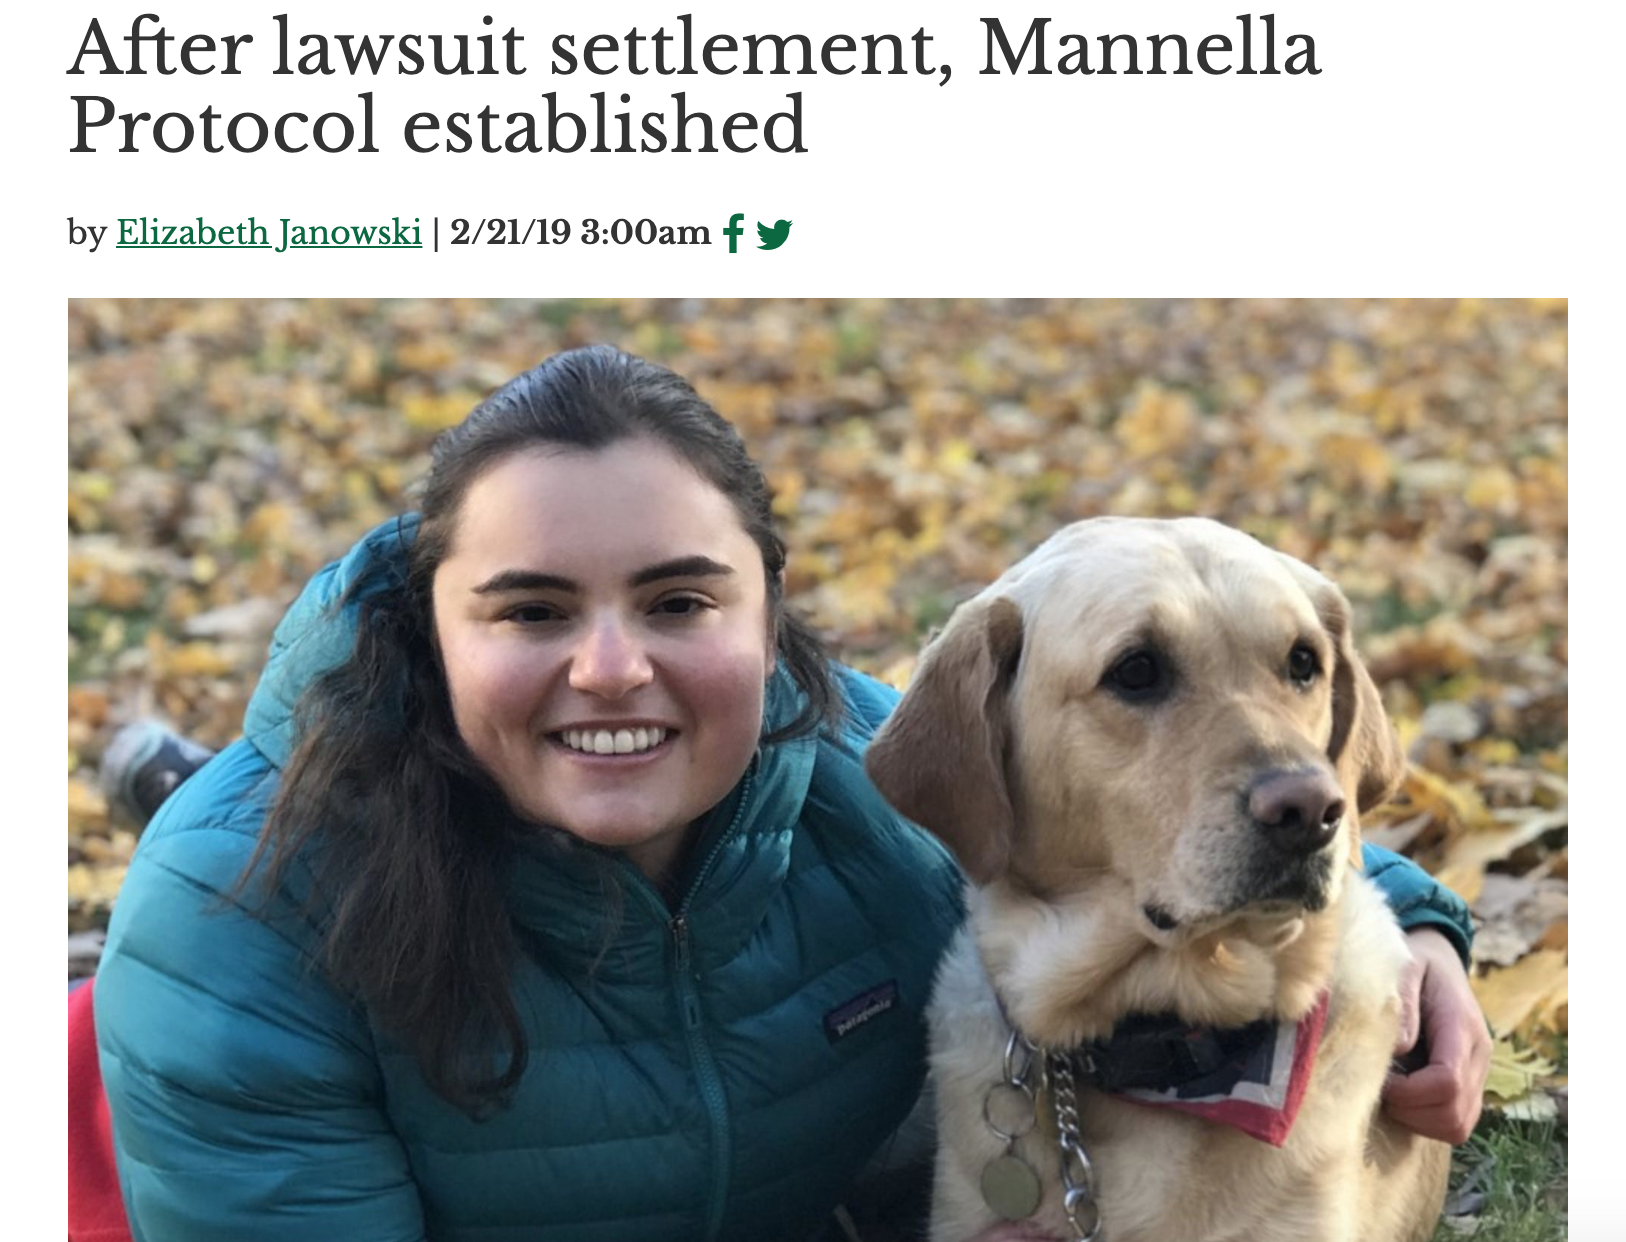 An article from The Dartmouth on the settlement of a lawsuit and resulting establishment of the Manella Protocol.